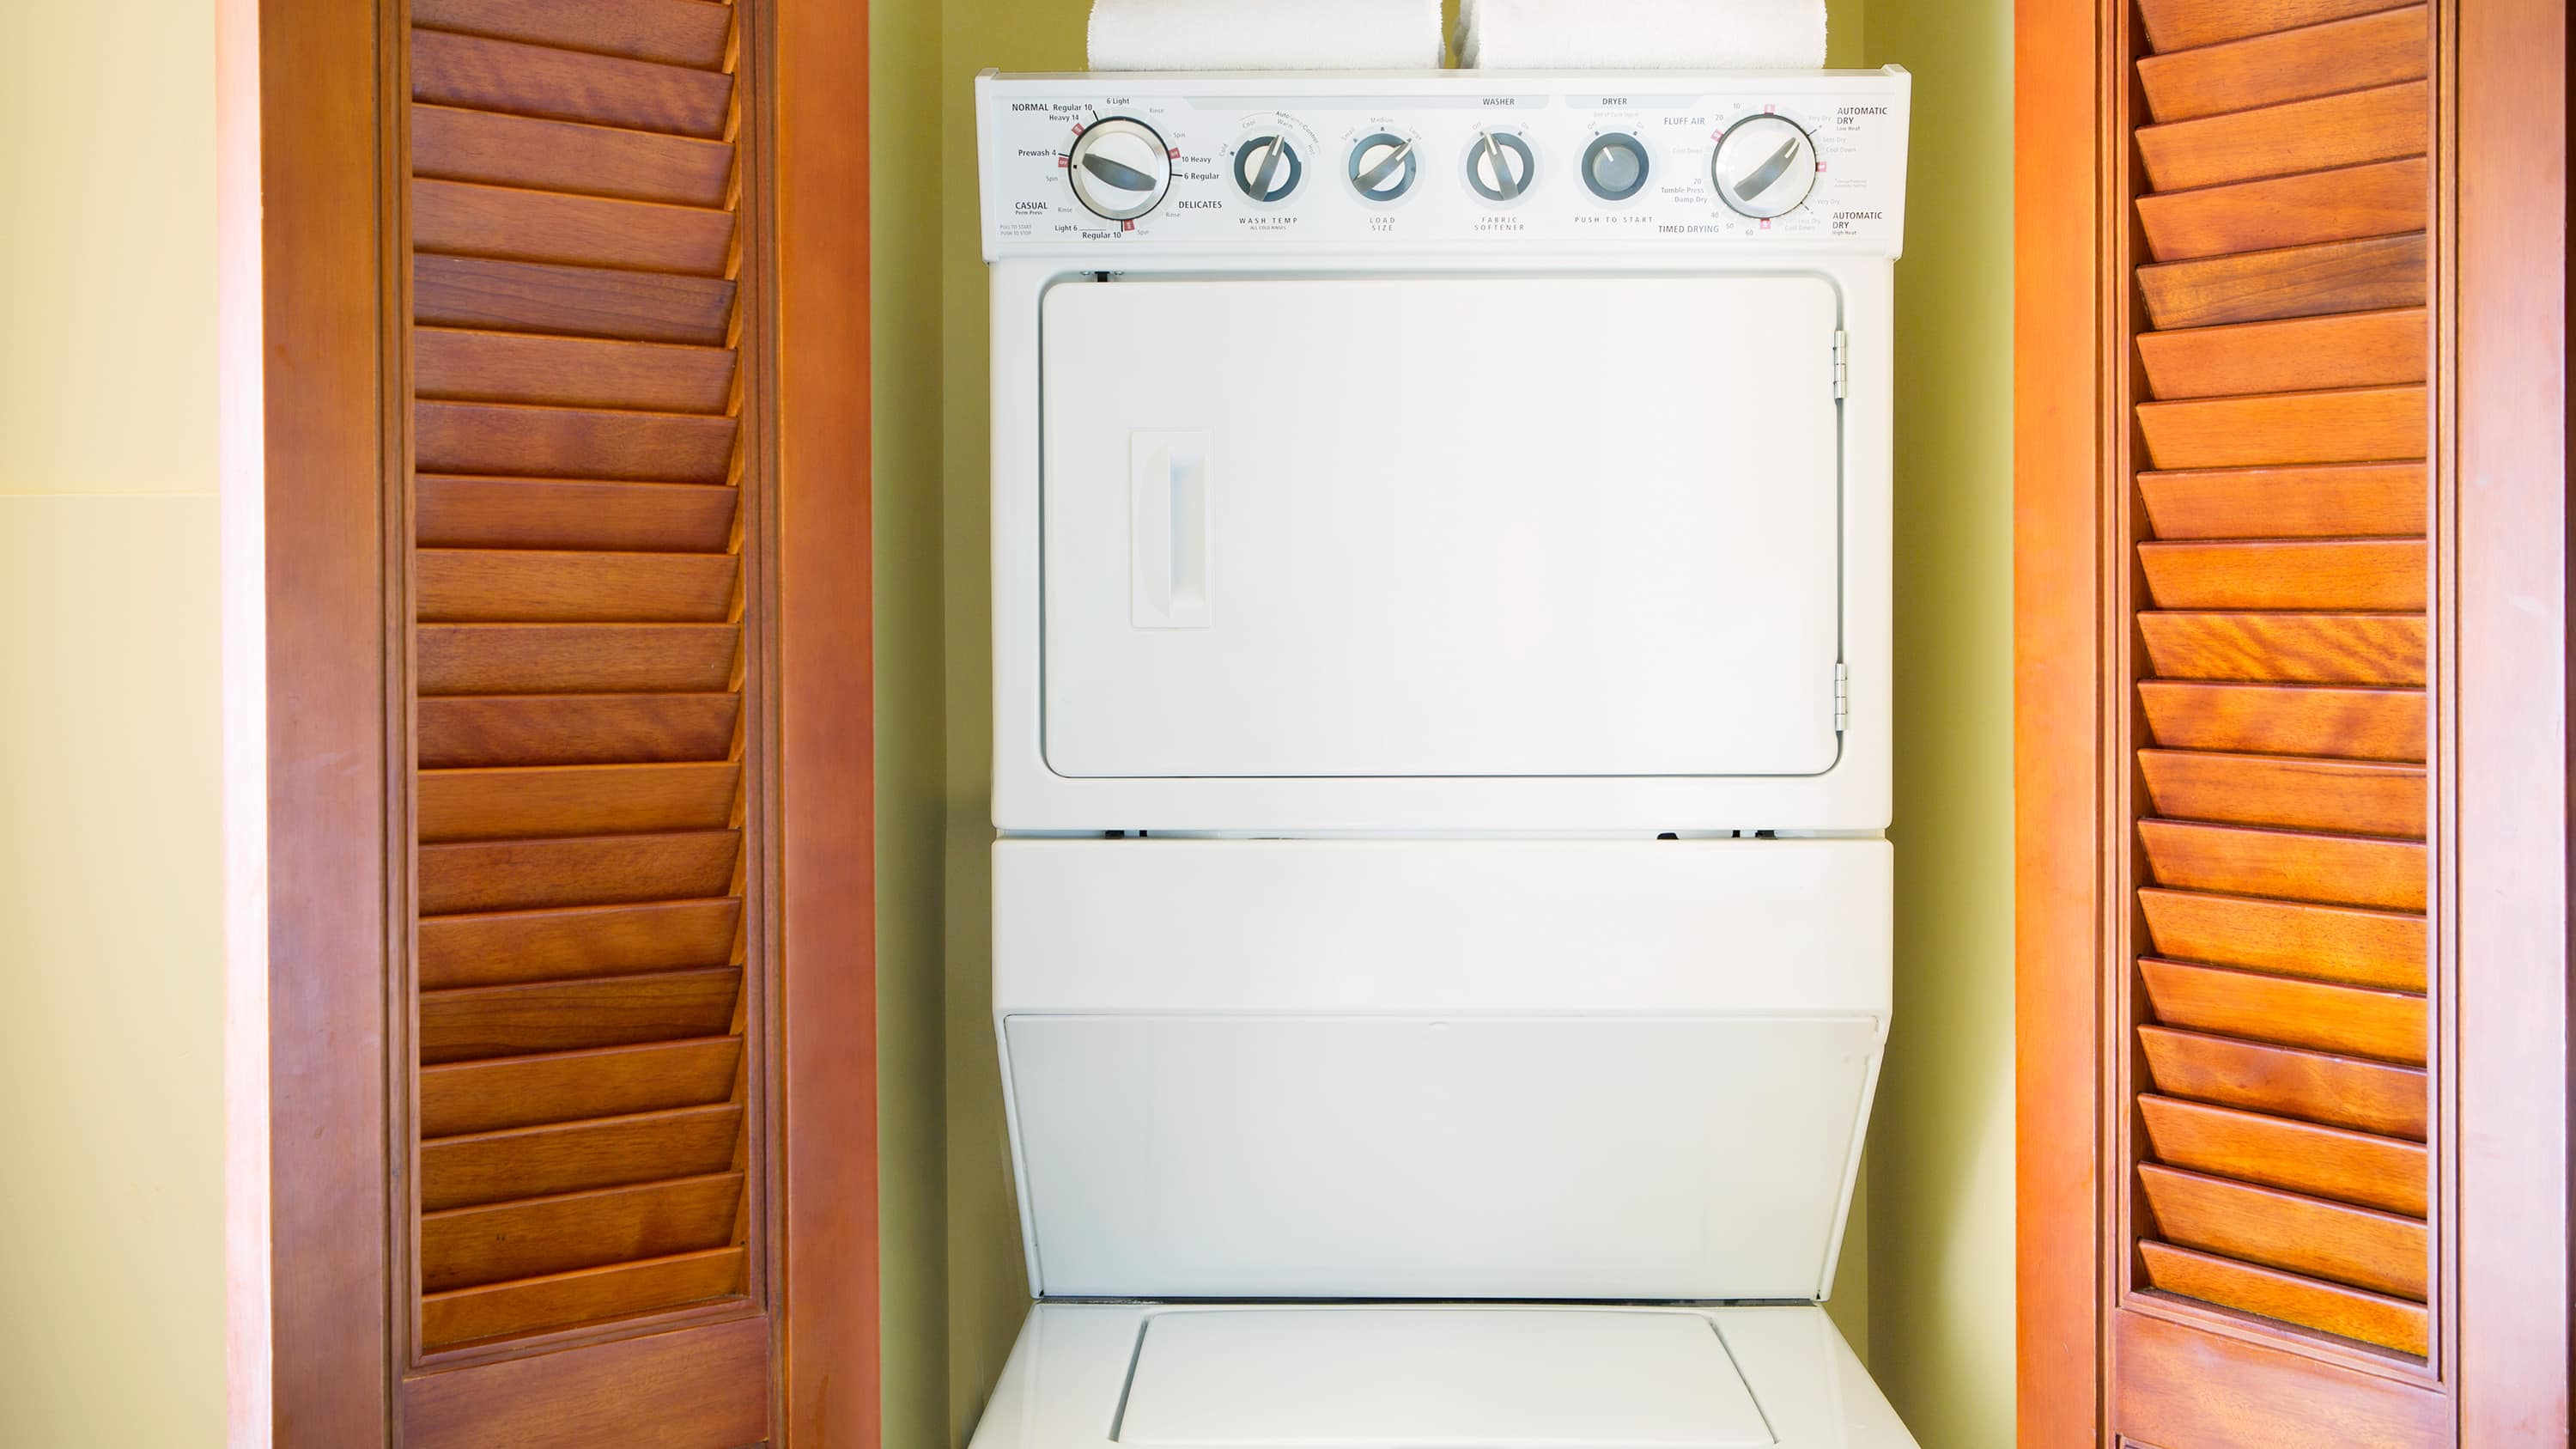 A washer and dryer unit